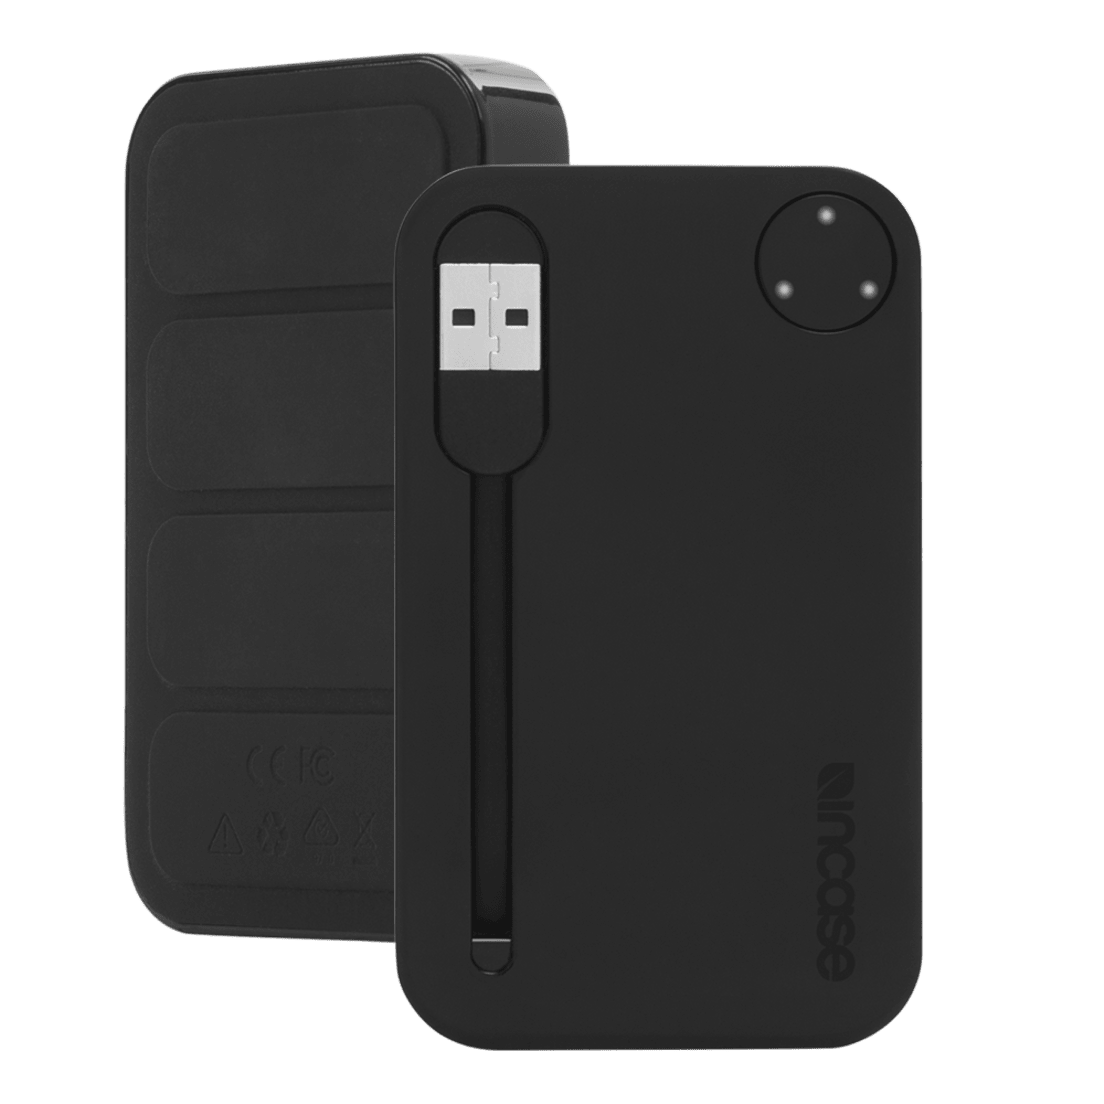 2 Pack Incase 2500mah Portable Power Bank With Integrated Usb Cable